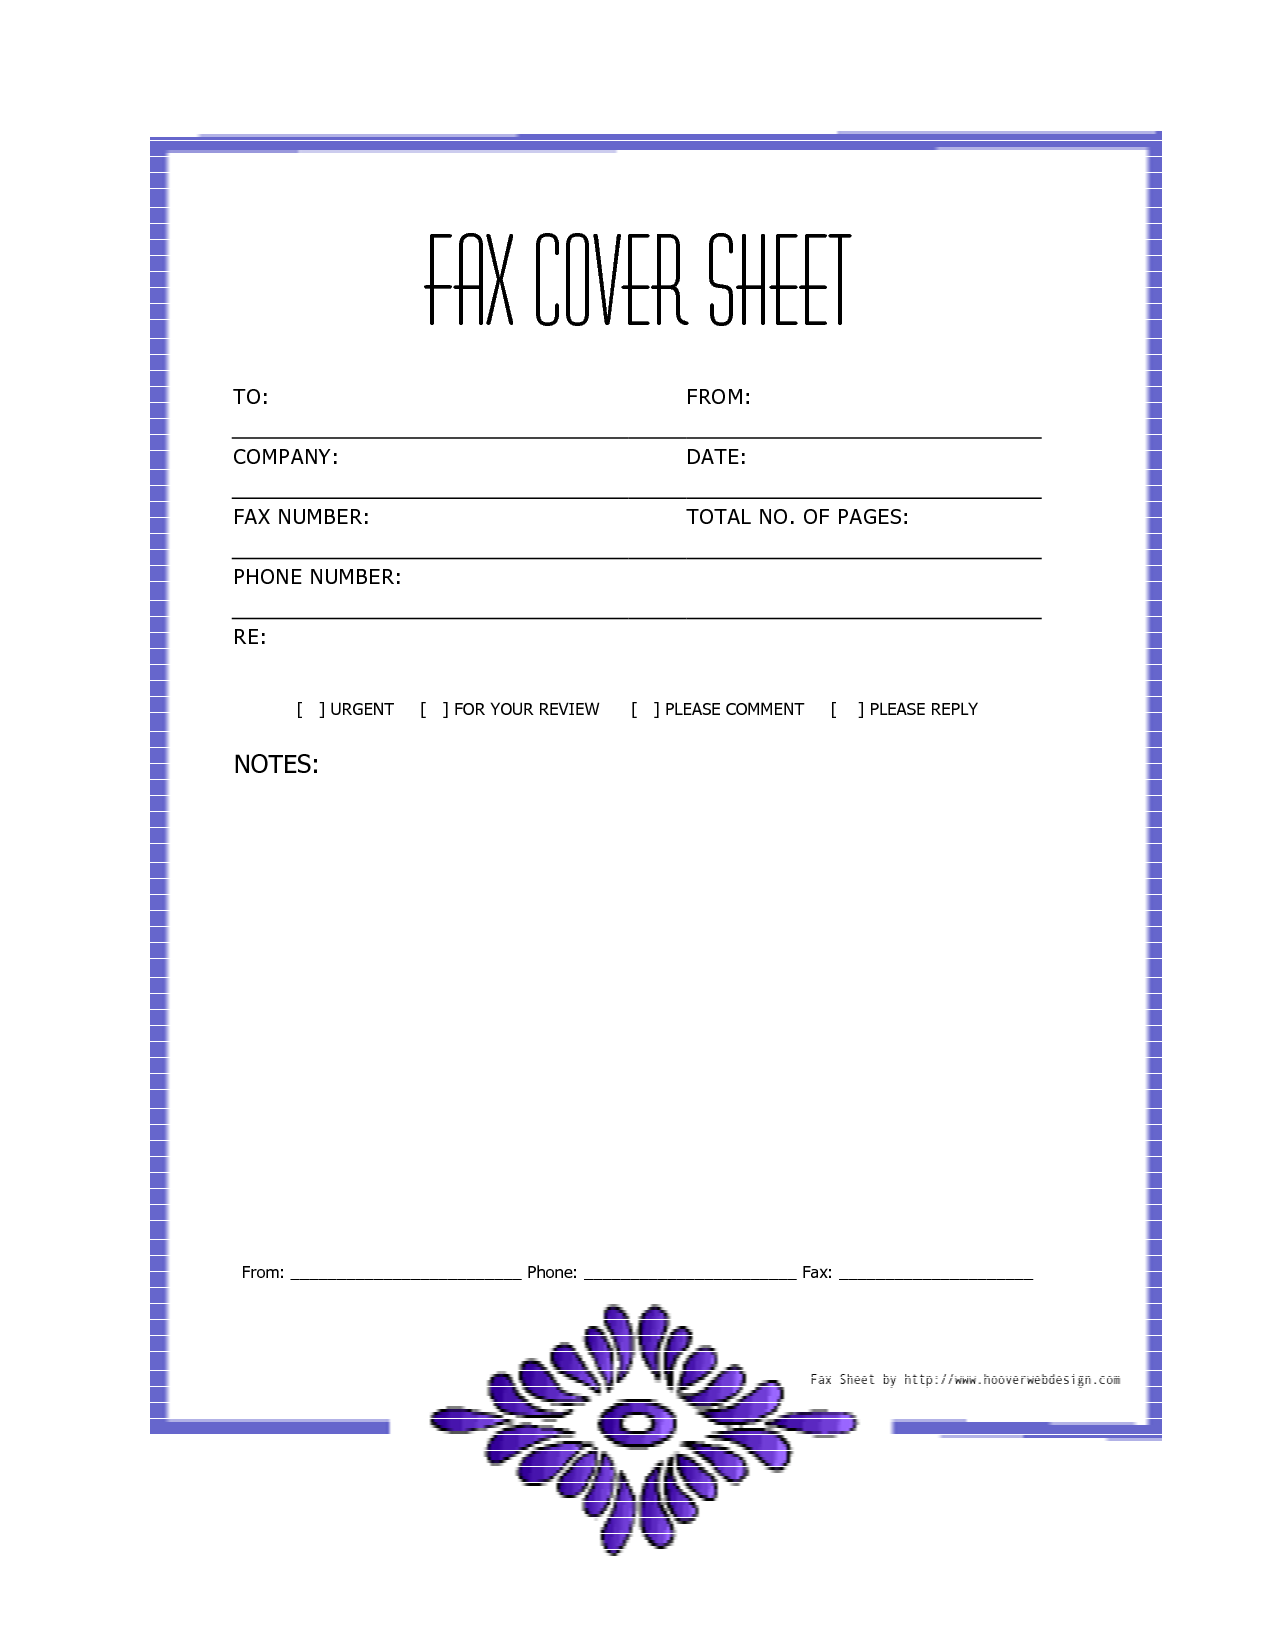 Free Downloads Fax Covers Sheets – Fax Cover Sheet Download